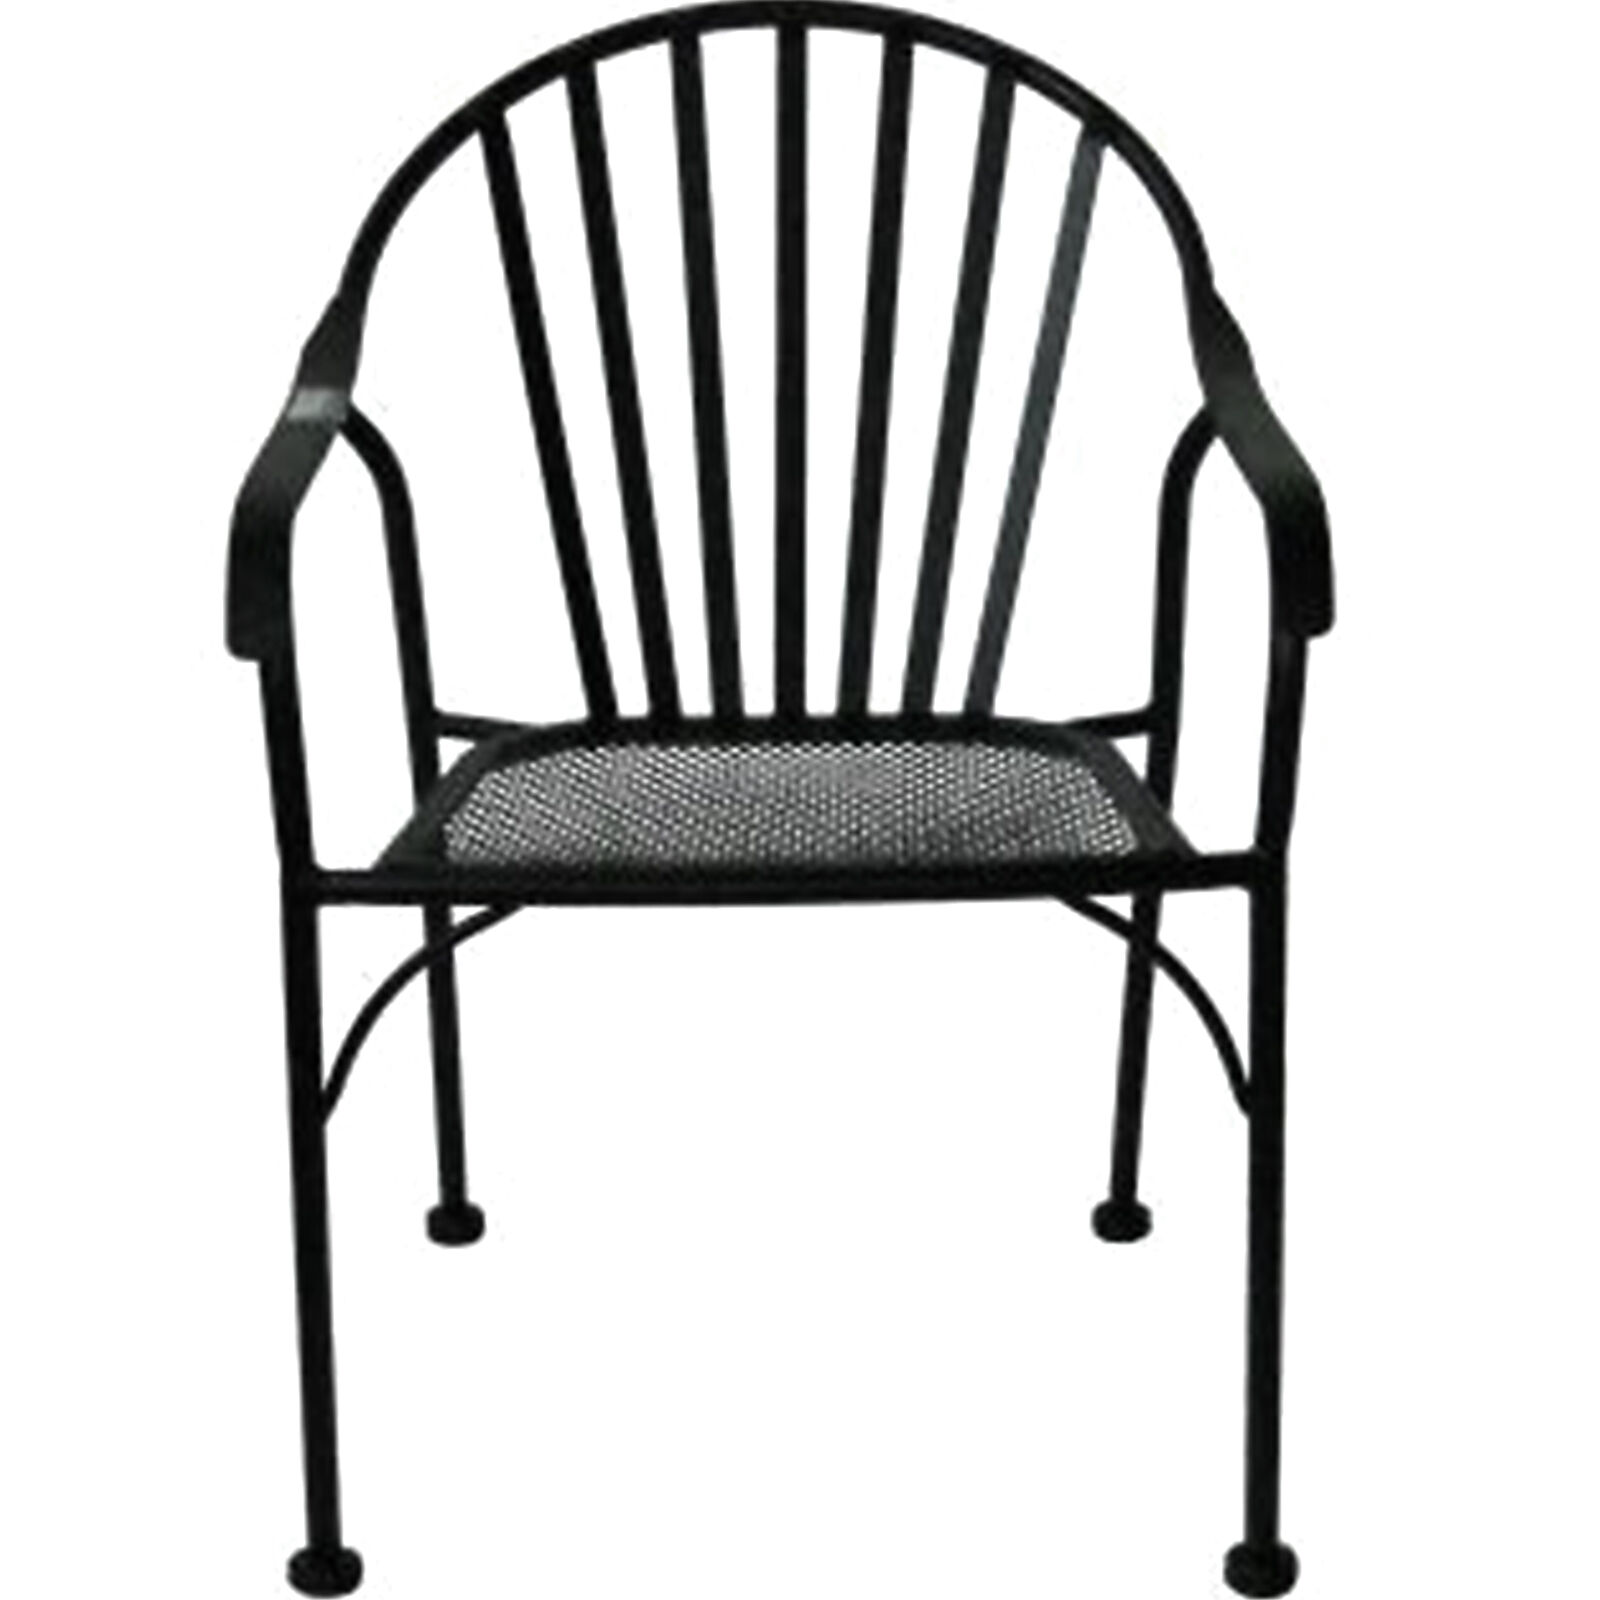 Black Patio Chairs Black Wrought Iron Slat Patio Chair At Home